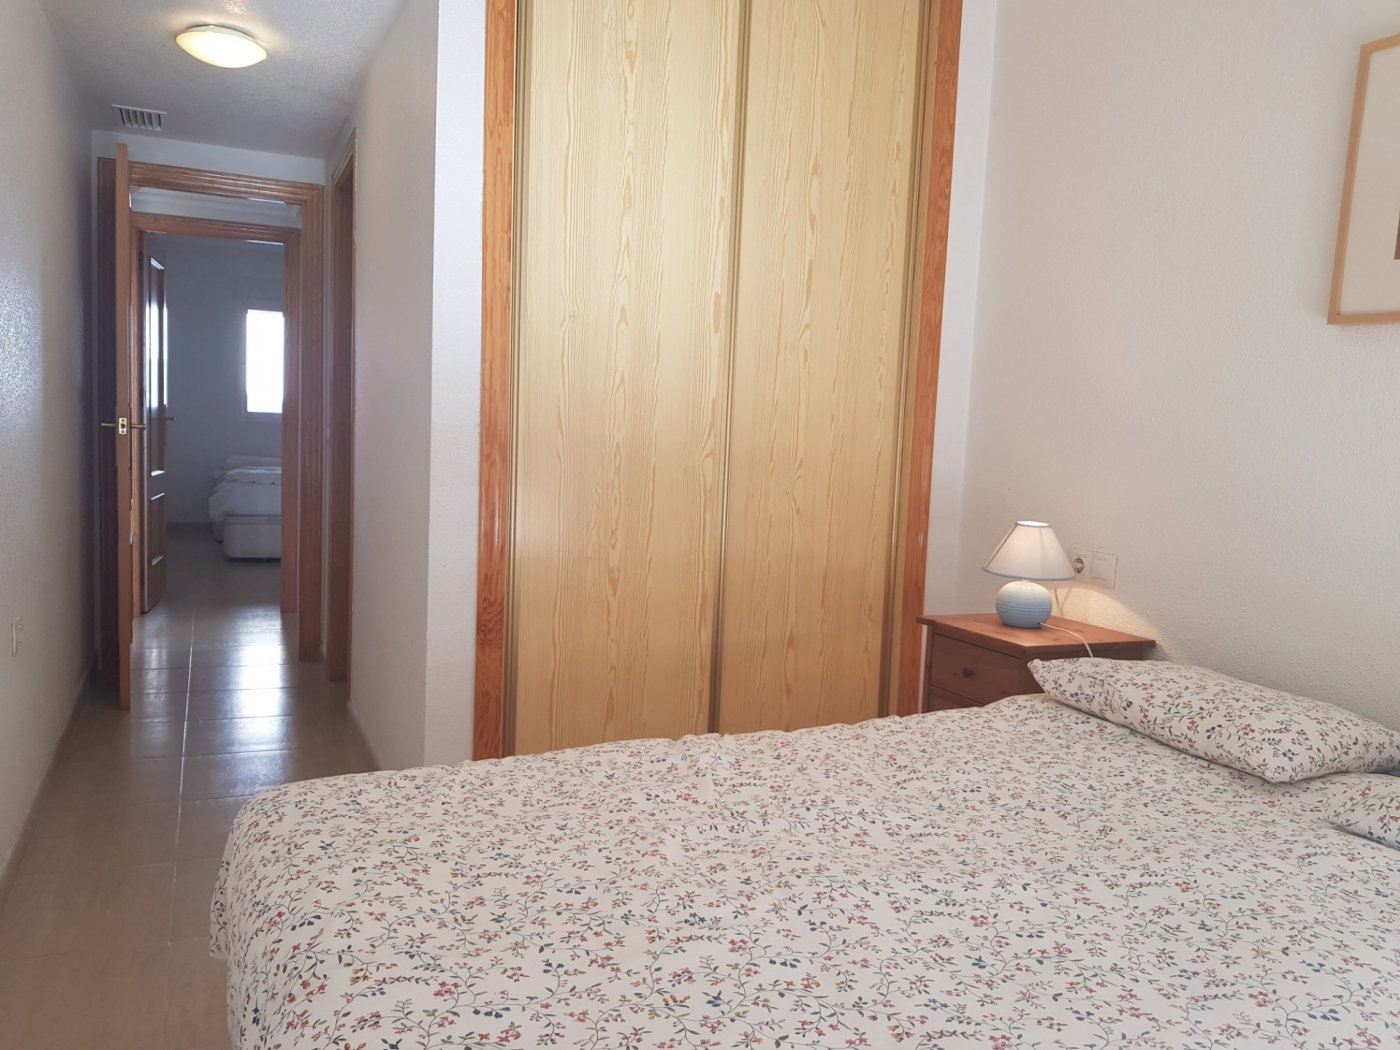 Gallery Image 23 of Fantastic corner apartment on walking distance of beach and shopping centre